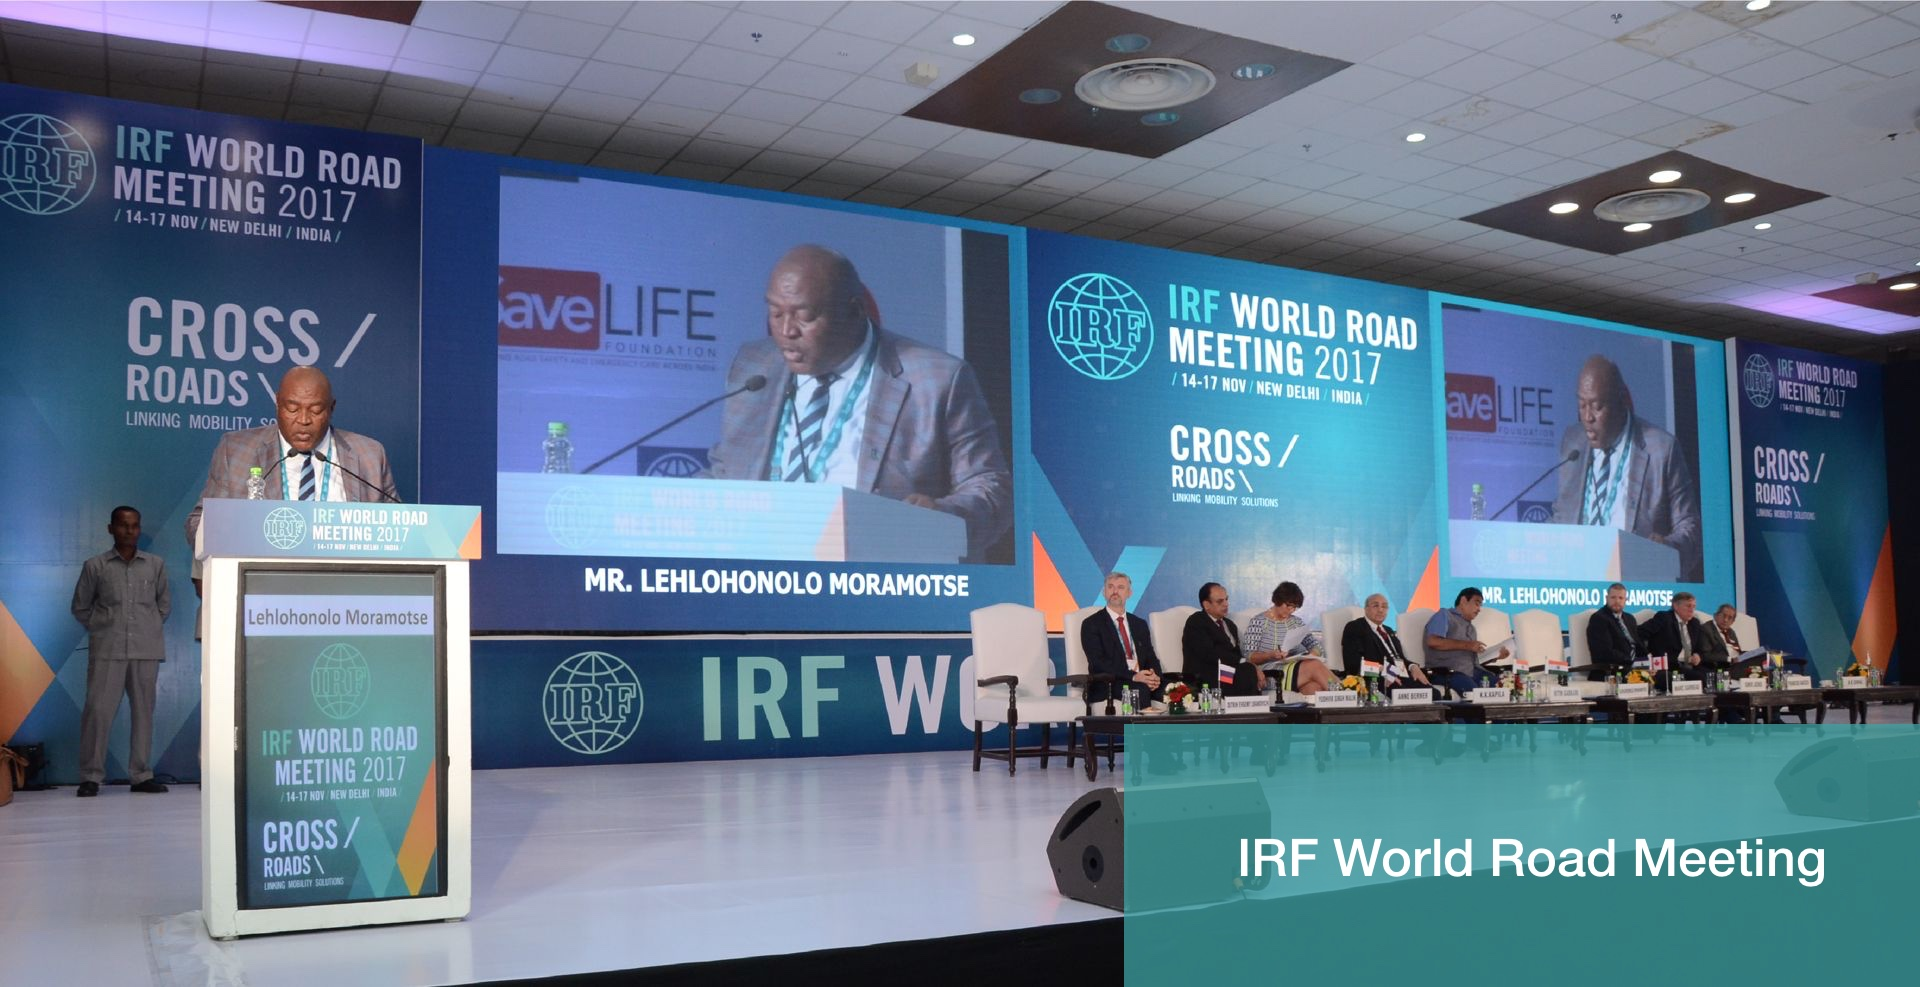 IRF World Road Meeting